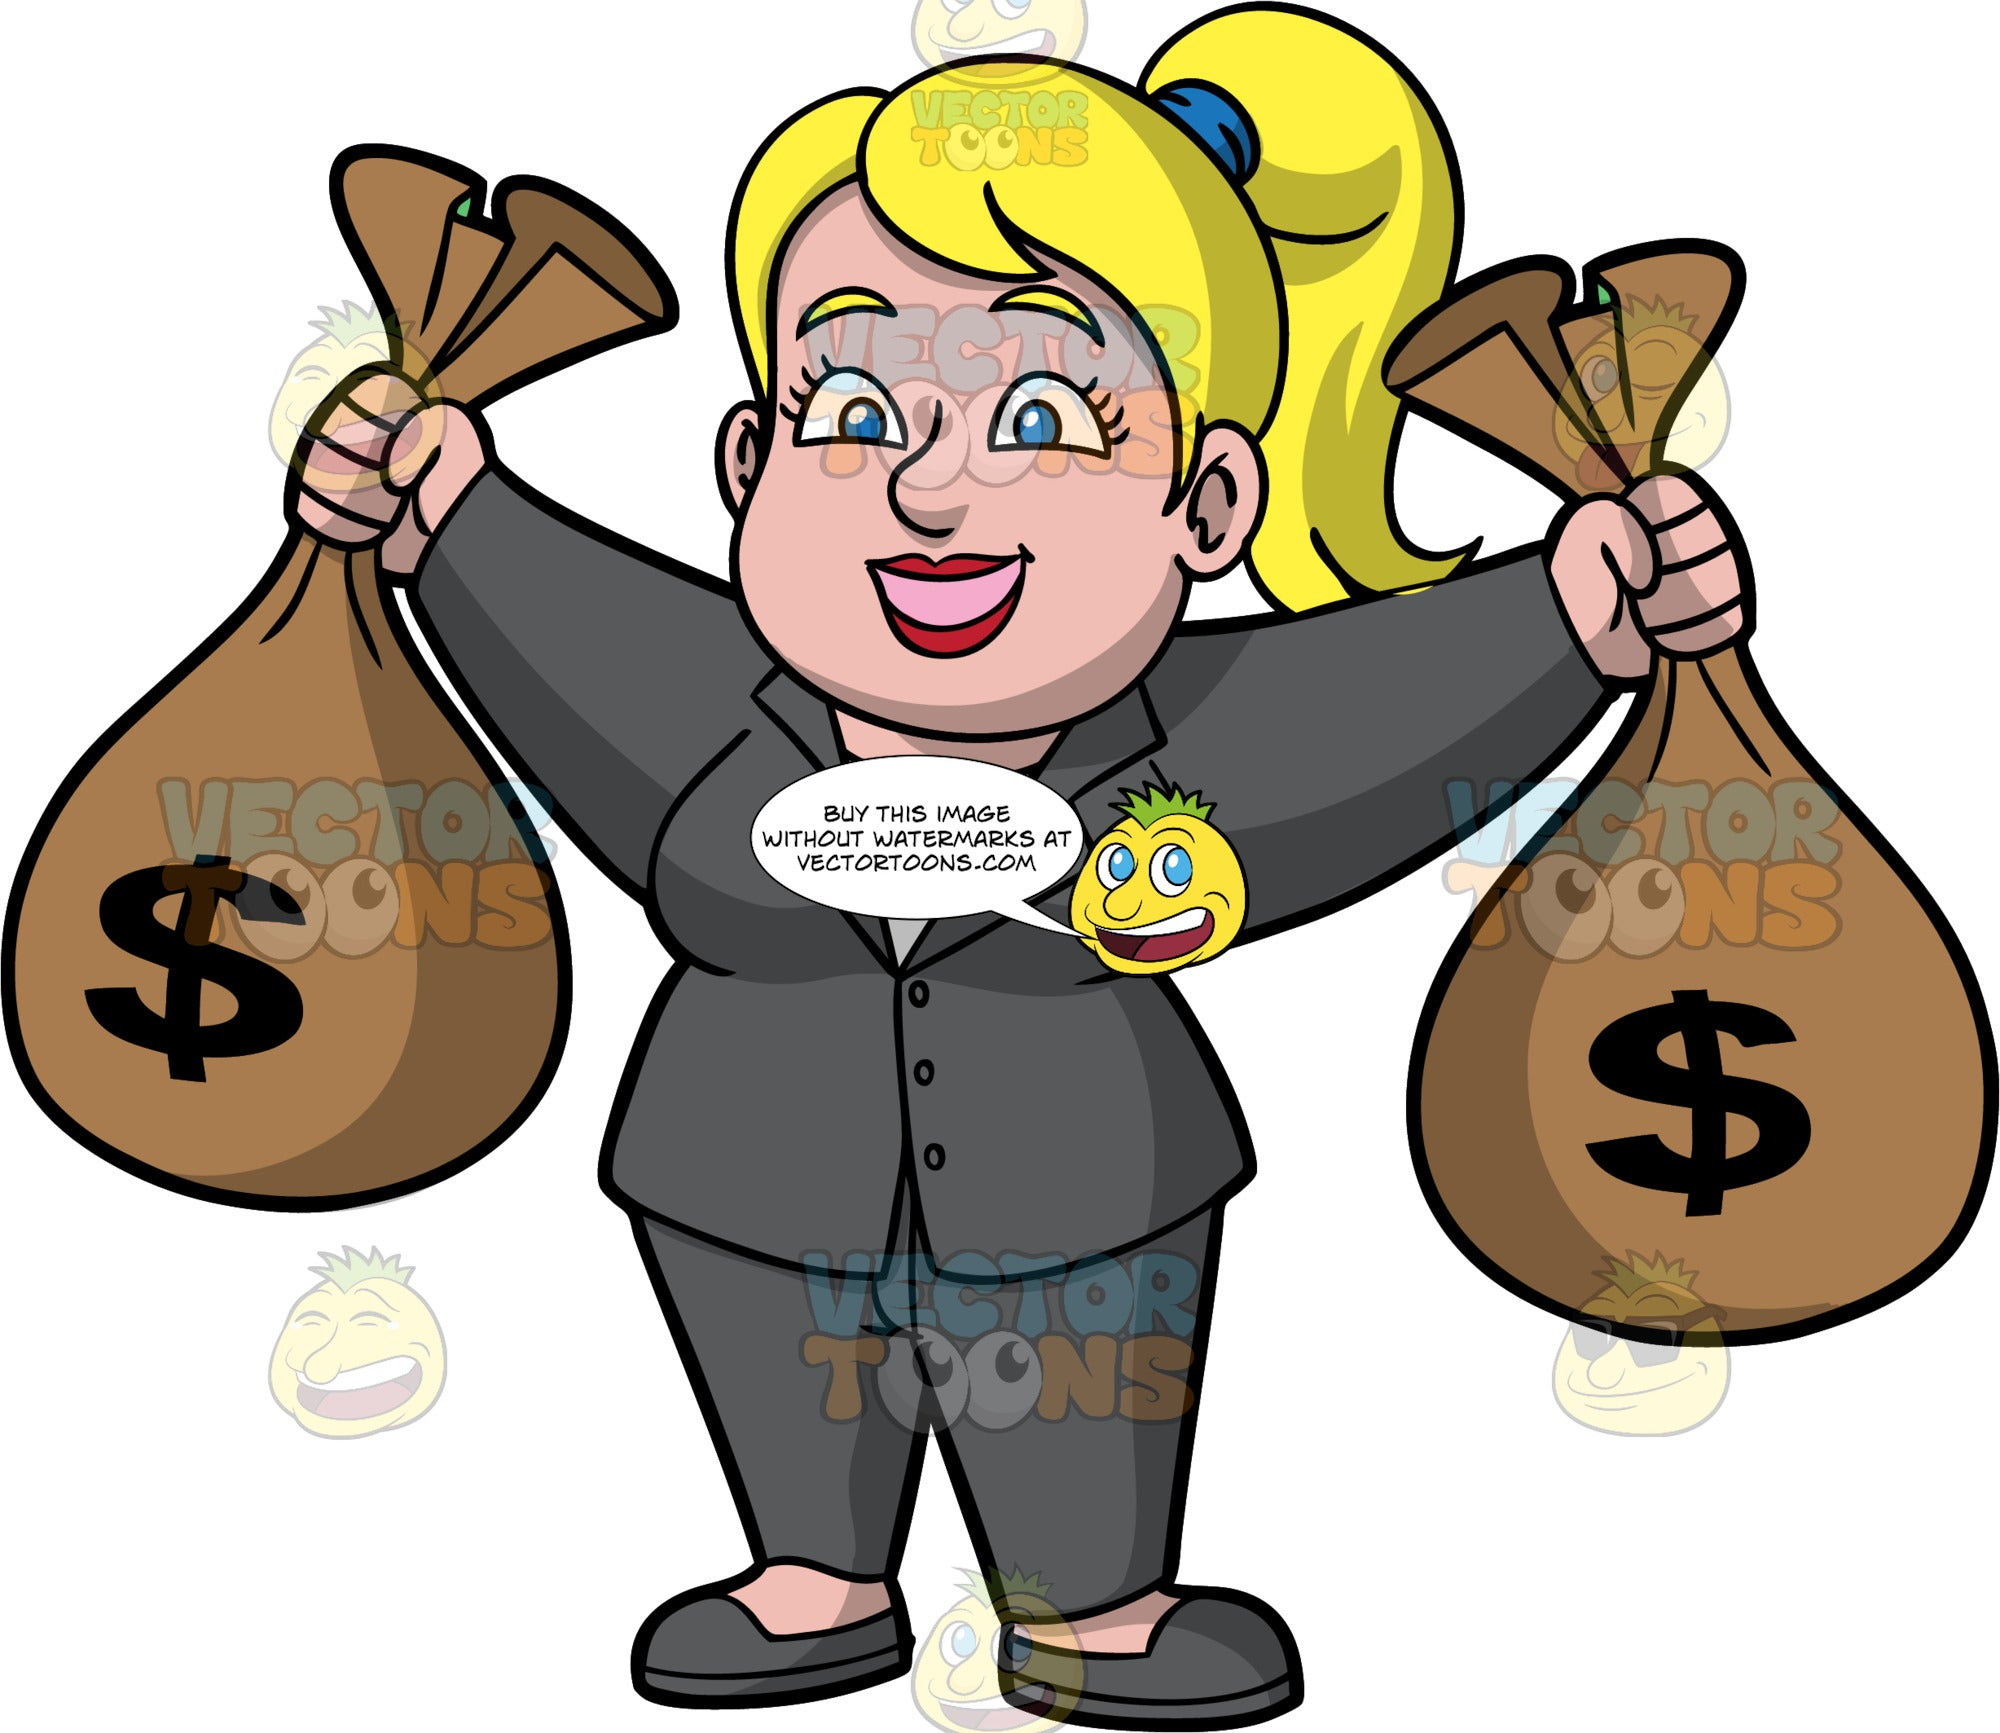 Pat Holding Big Bags Of Money. A blonde woman wearing a dark gray pant suit and gray shoes, standing and holding up a bag of cash in each hand